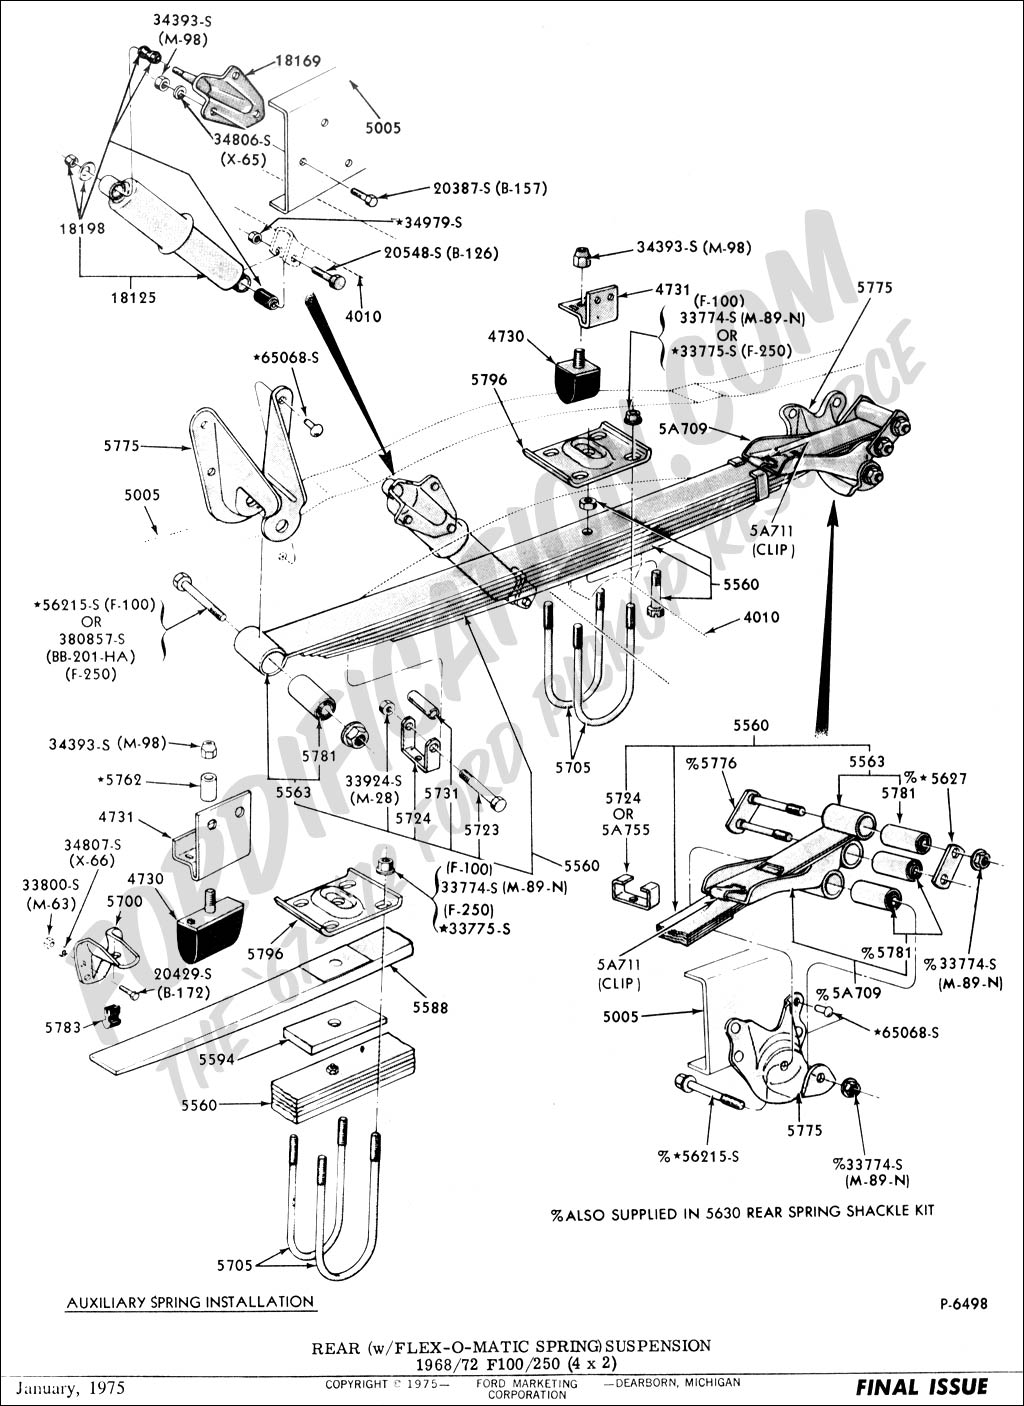 Holden  modore Front Suspension furthermore 2010 F250 Front End Parts Diagram as well 57876 308 Wont Idle Constant Exhaust Backfiring Please Help together with 2003 Ford Mustang Gt Fuse Box as well E36 M3 Harness Bar. on au v8 wiring diagram